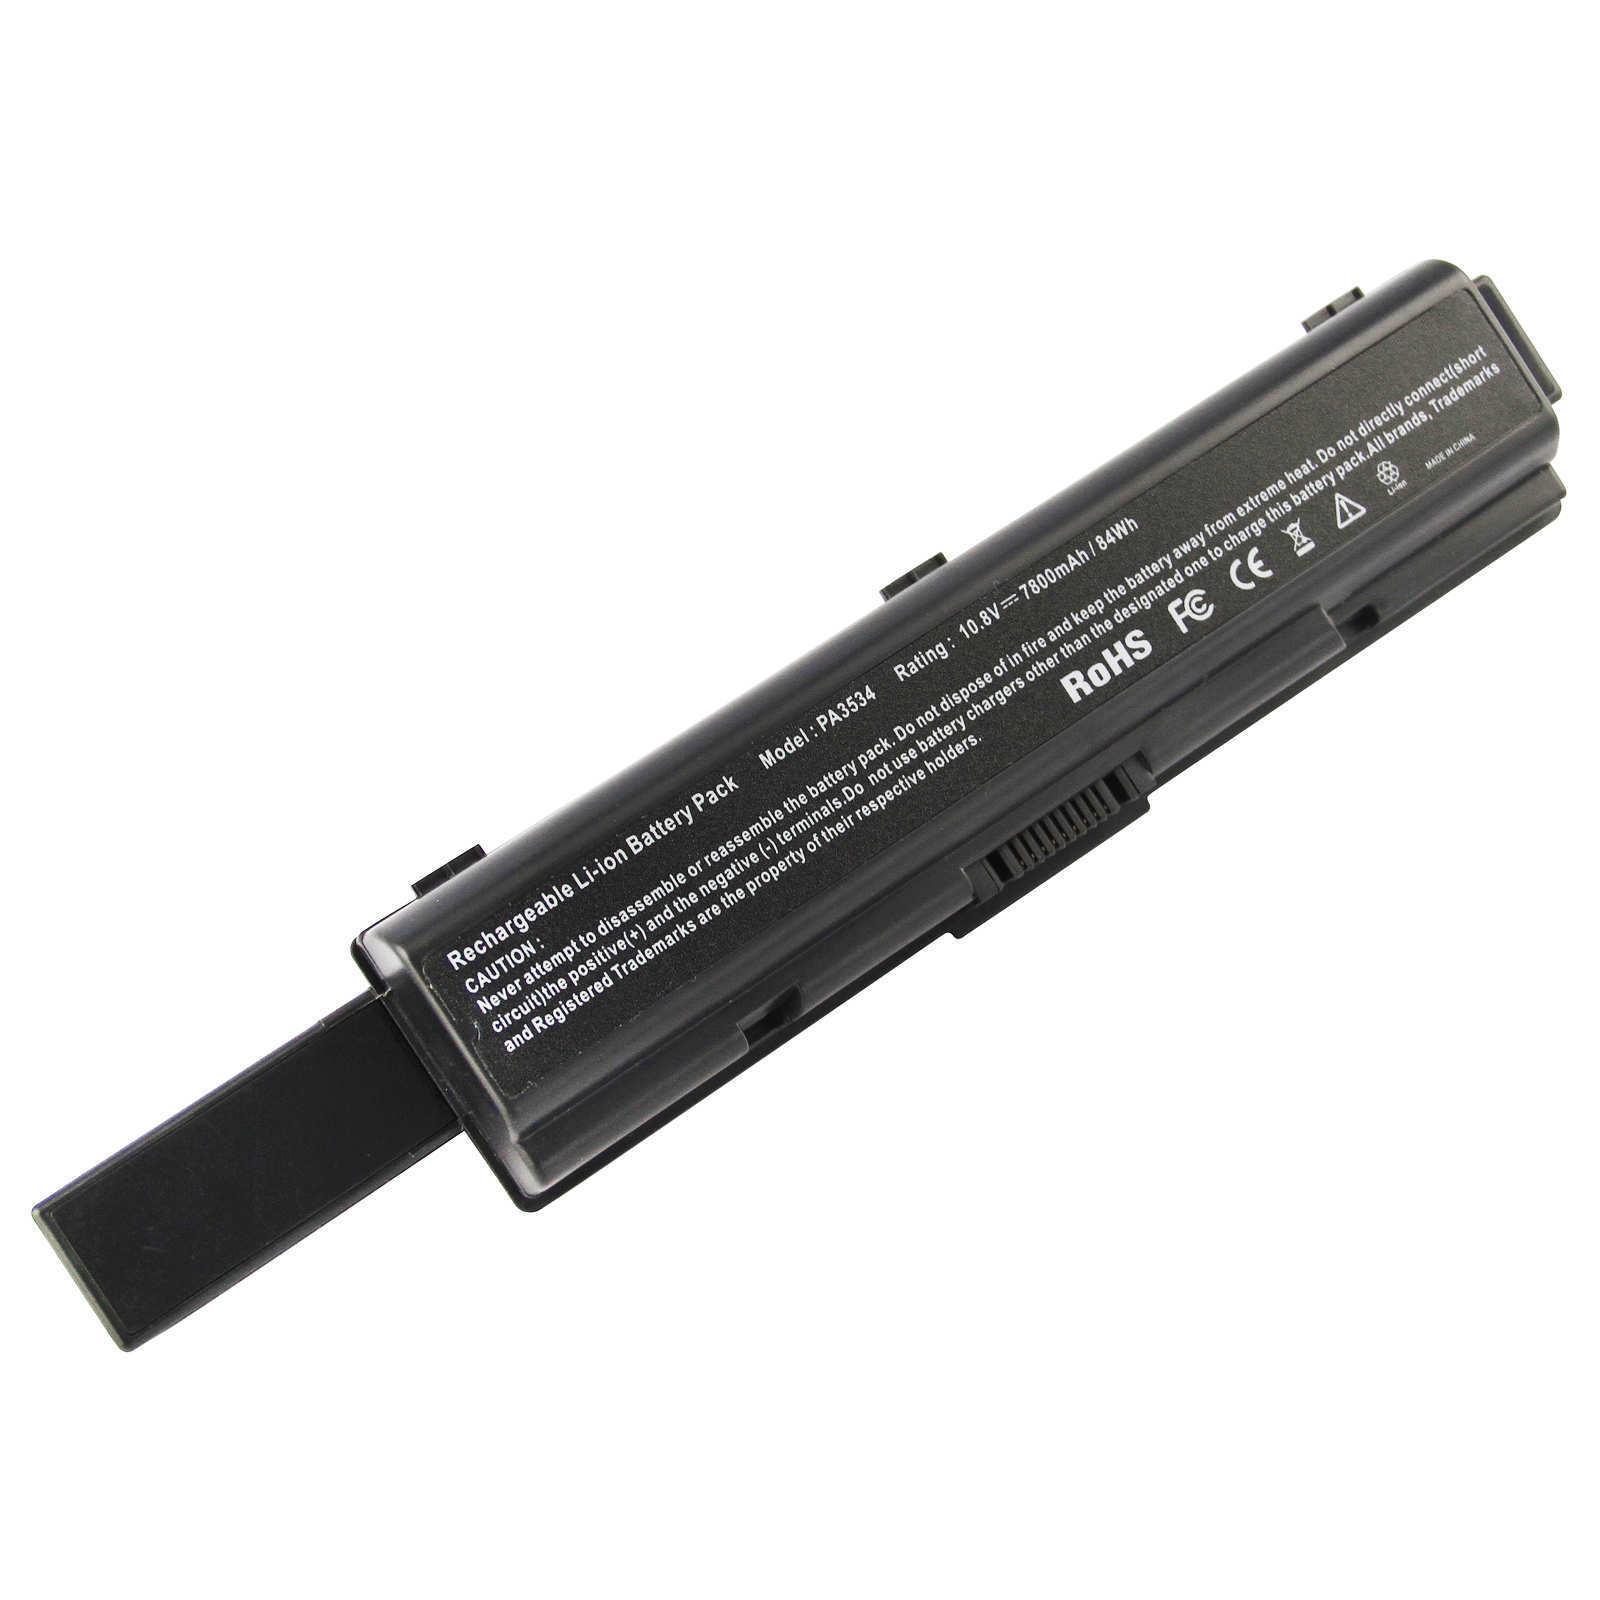 Replacement Toshiba Satellite A305-S6837 Battery